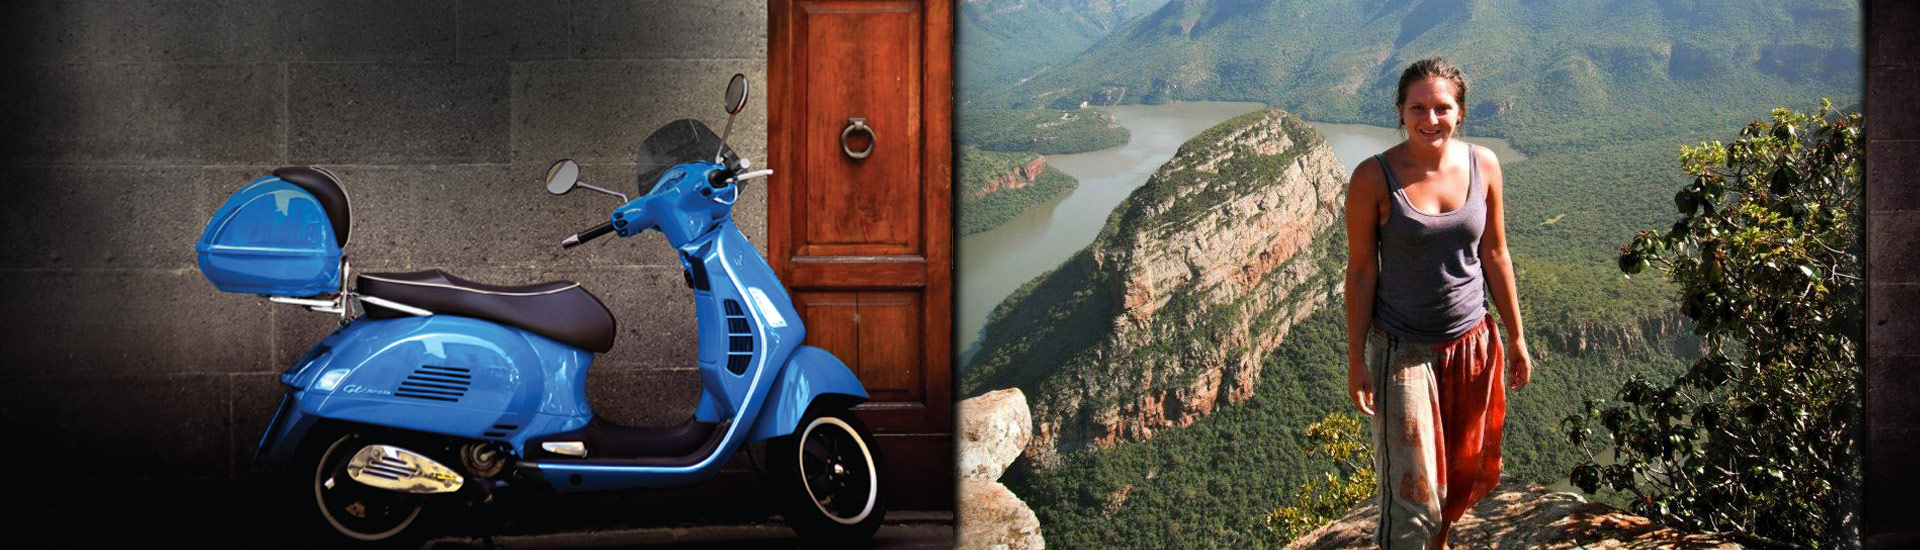 Vespa Image - A Door Into Your Opportunities Abroad